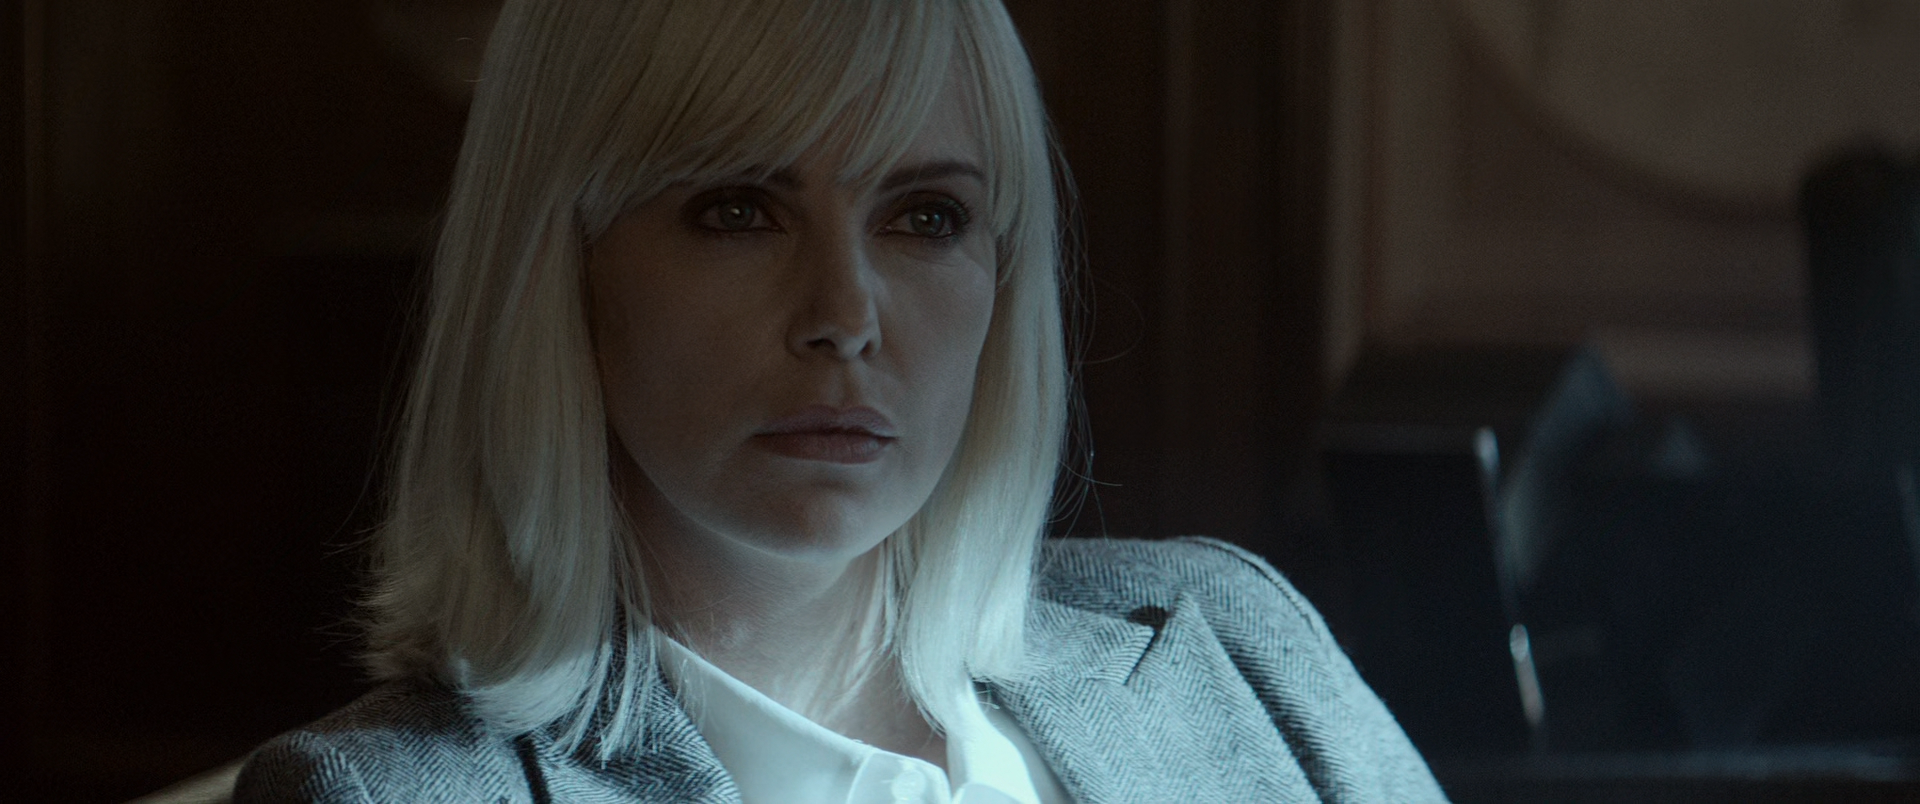 Atomic.Blonde.2017.1080p.iTunes_HEVCCLUB015583.png